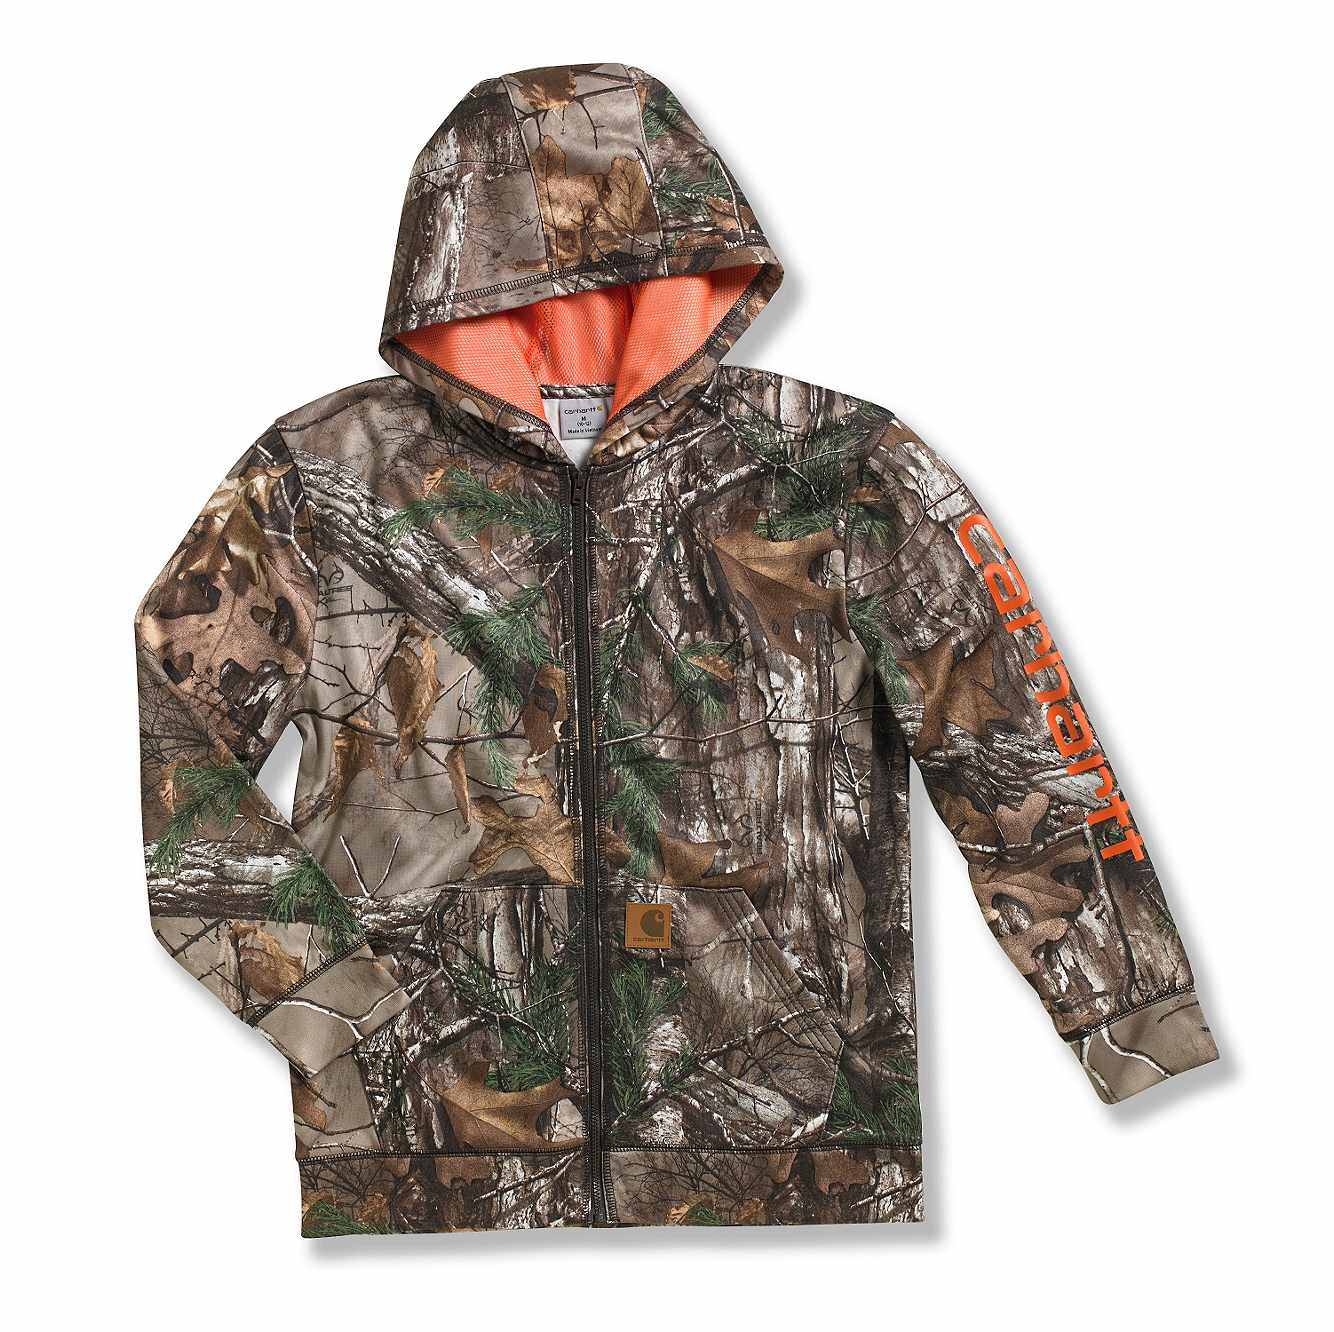 Picture of Packable Work Camo Hooded Rain Jacket in Realtree Xtra